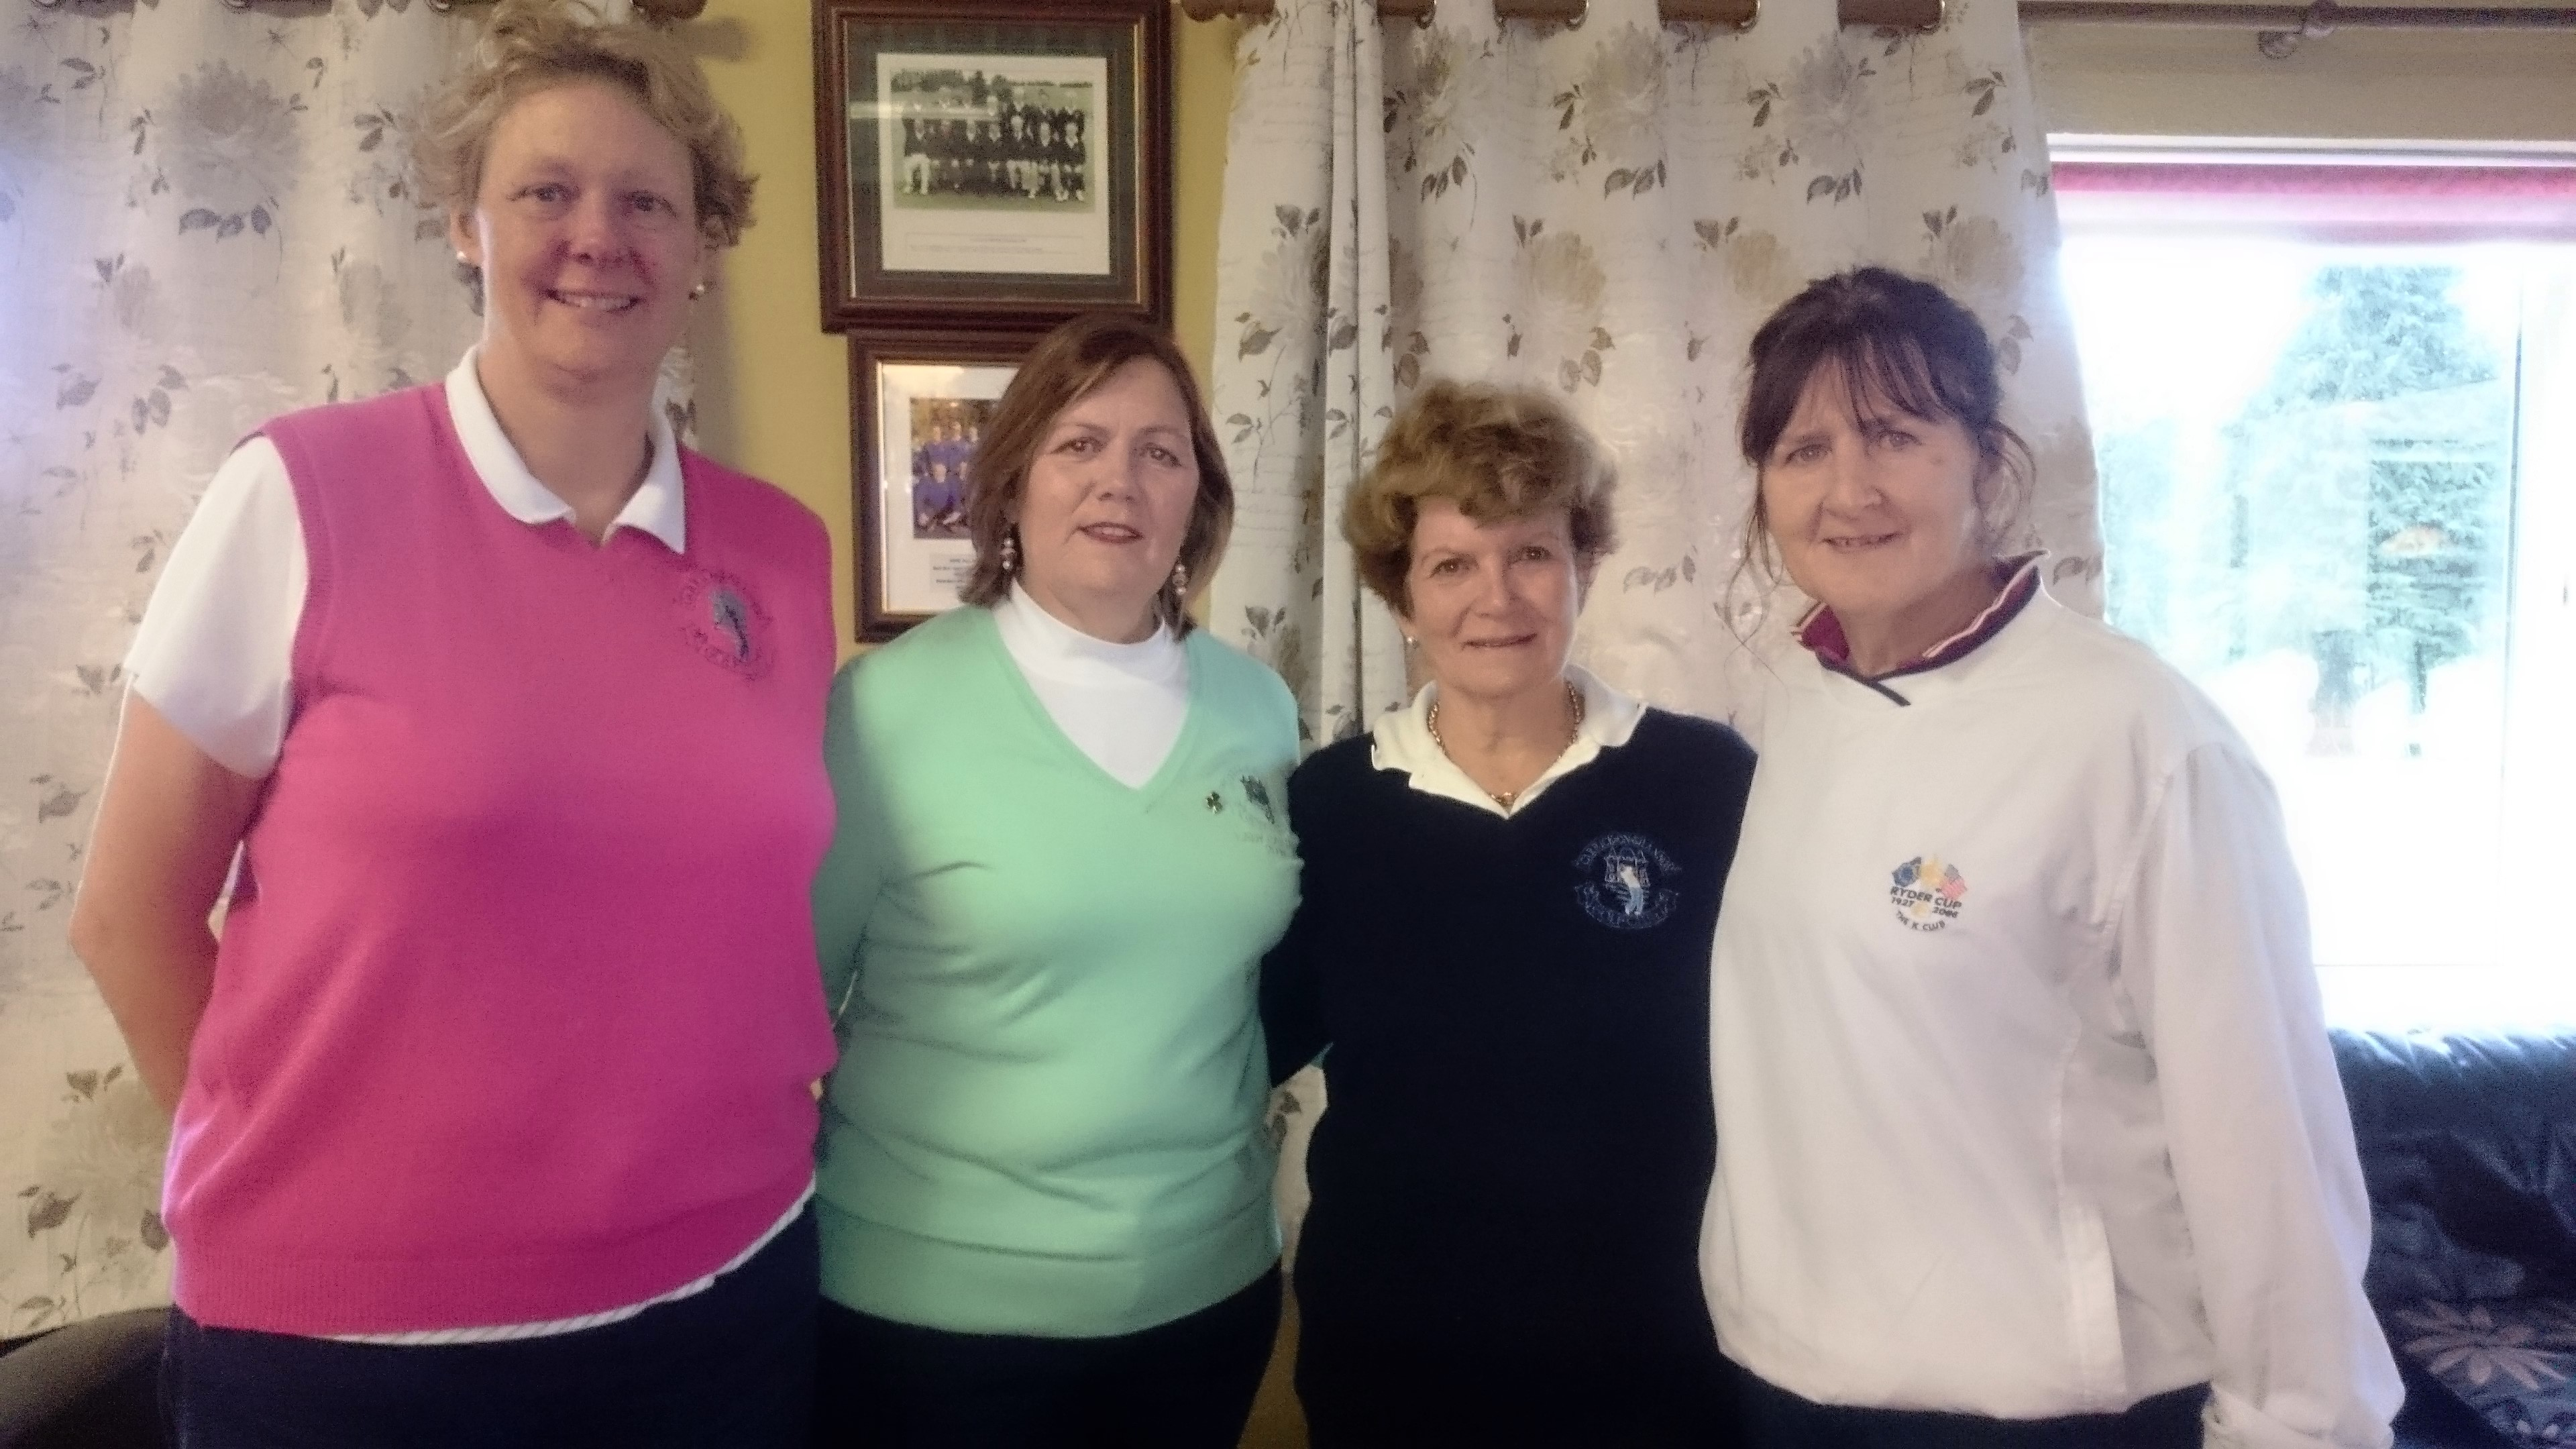 ARIGNA FUELS: ANN KEENAN(3rd), LADY CAPTAIN NOLEEN MOFFATT, HELEN MARTIN(WINNER), PHIL EMMETT(SECOND), MISSING-GER FARRY(GROSS)